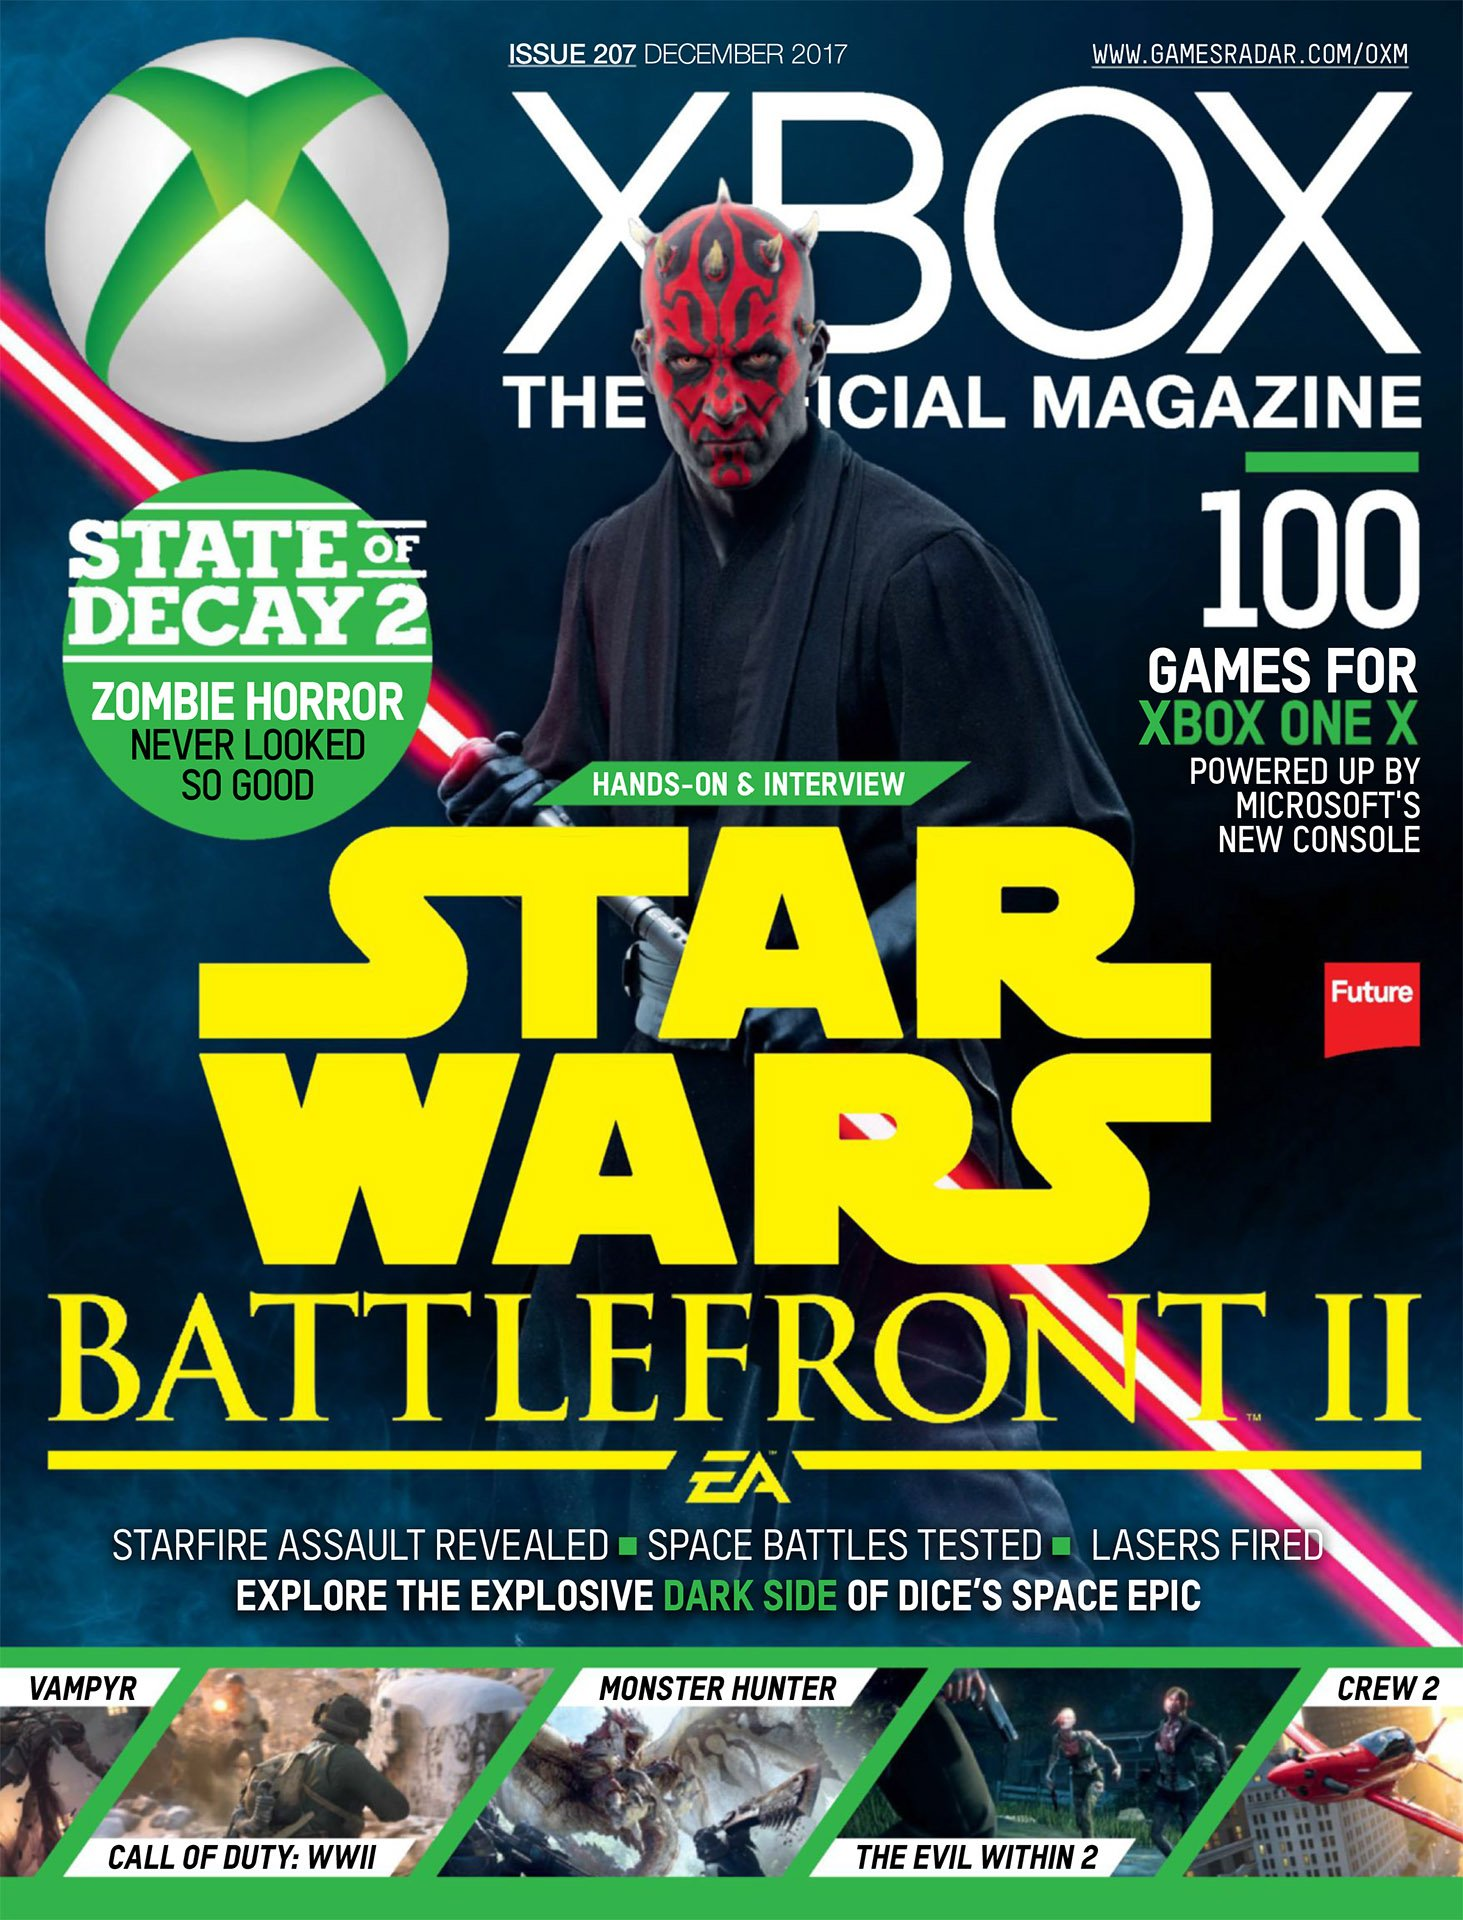 Official Xbox Magazine 207 (December 2017)